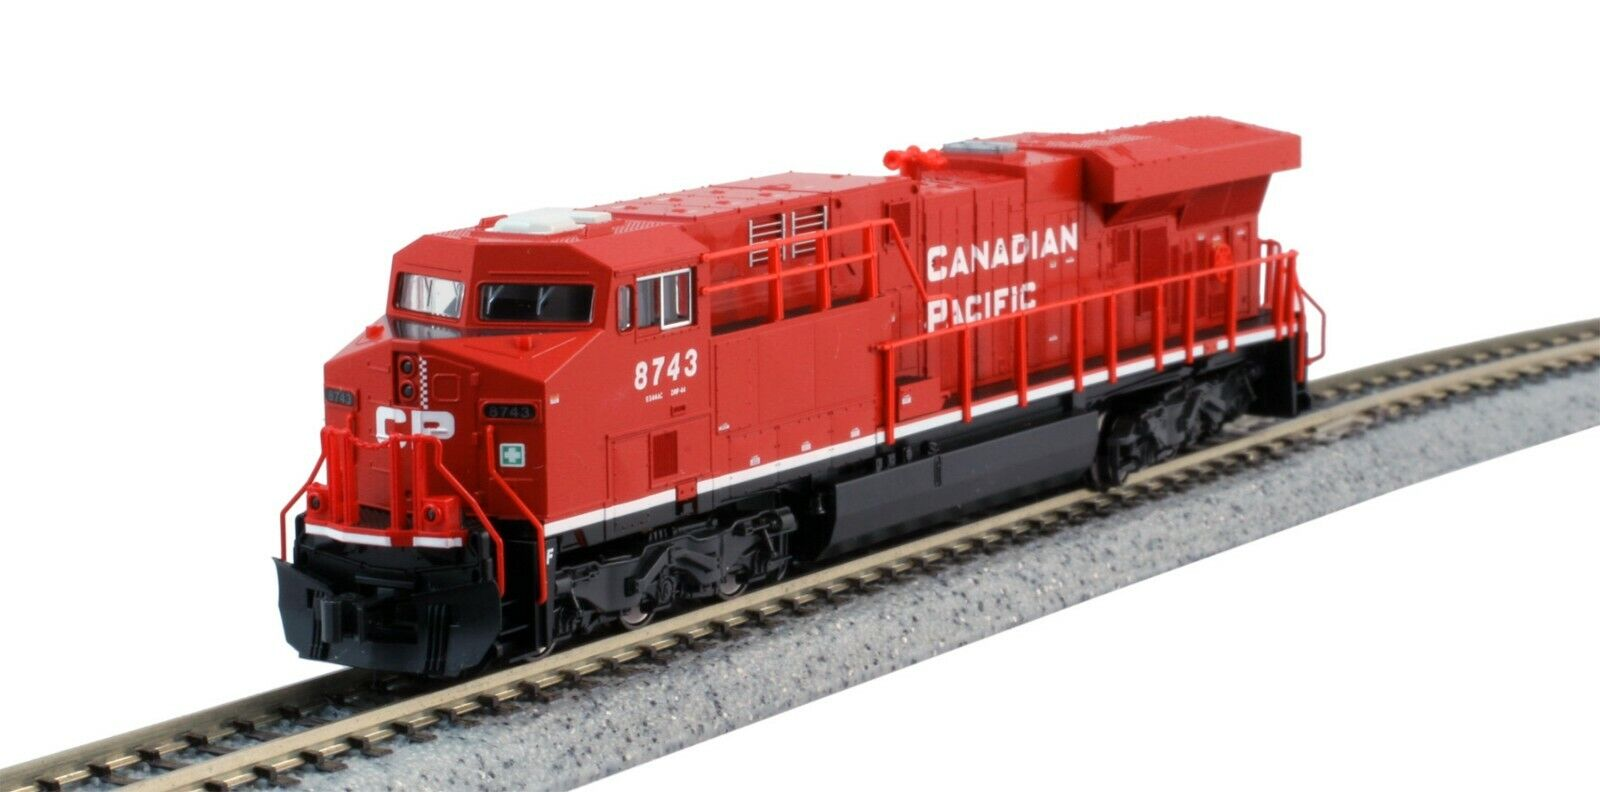 sport caldi KATO 176-8935, N Scale, ES44AC Canadian Pacific CP  8743, 8743, 8743, 1768935  n ° 1 online